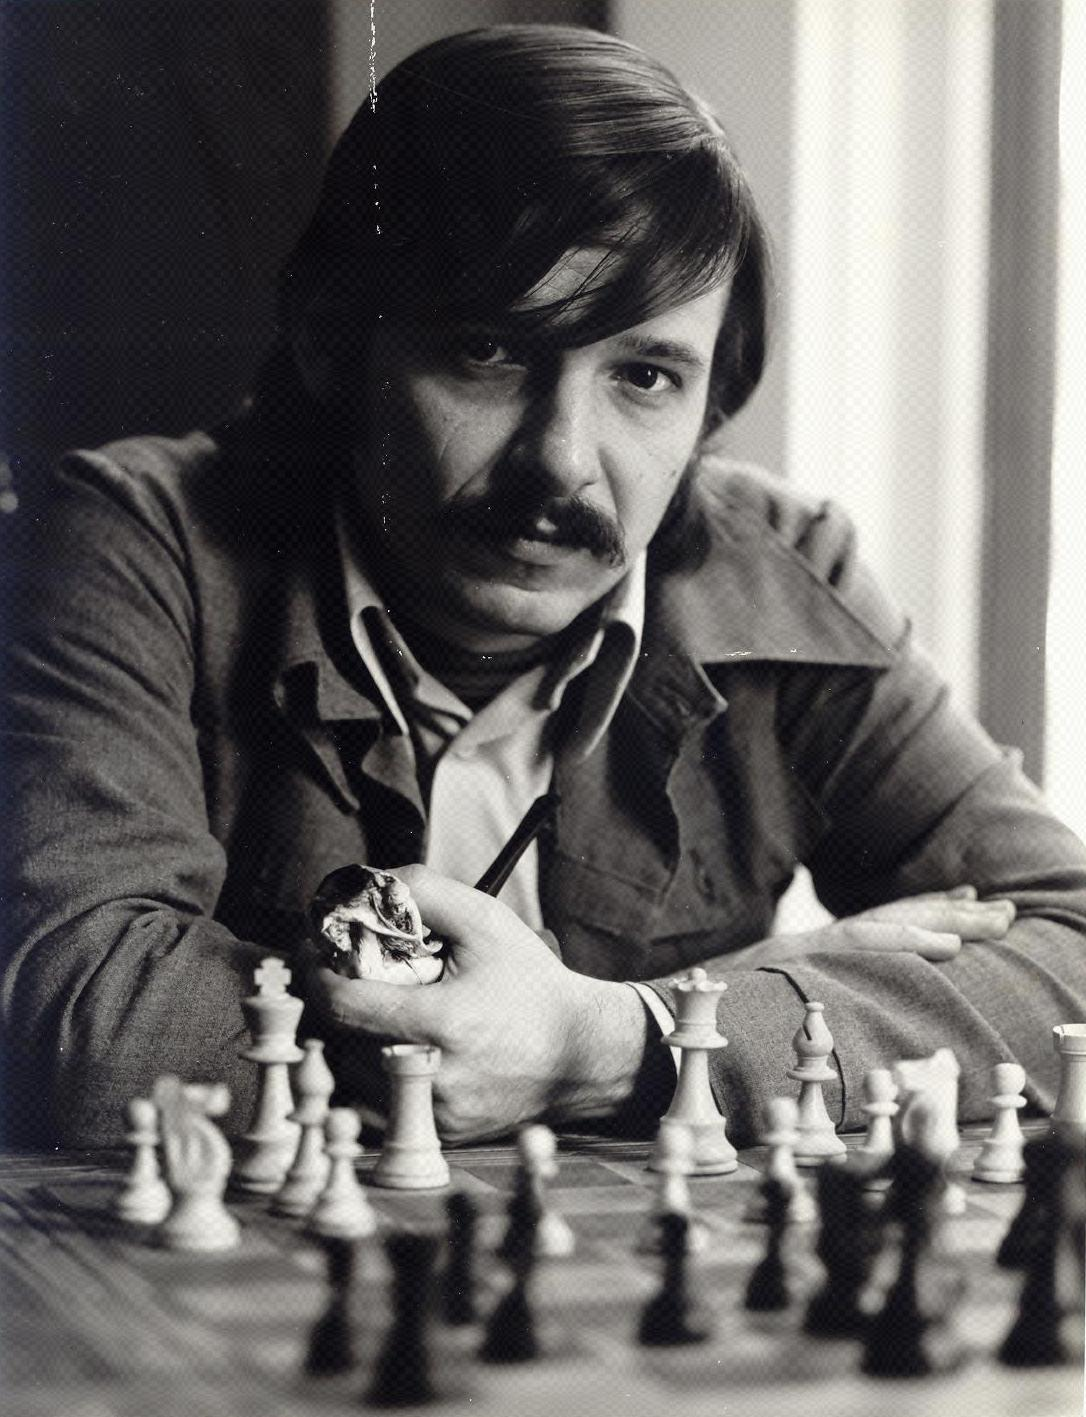 Vladimir Dobrich